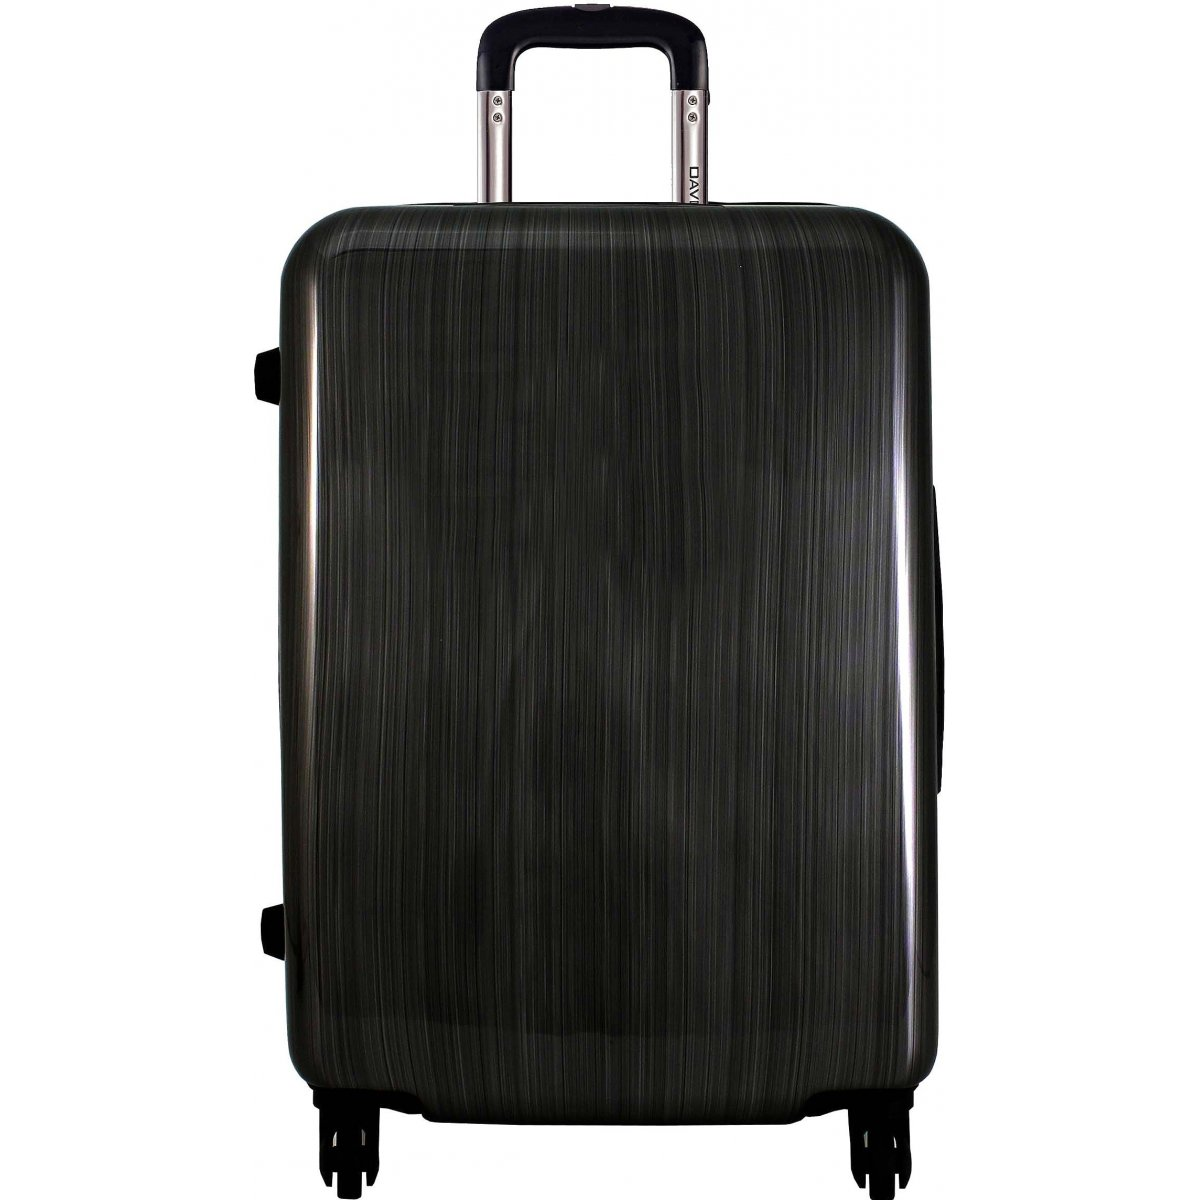 valise rigide david jones taille m 67cm ba20591m. Black Bedroom Furniture Sets. Home Design Ideas